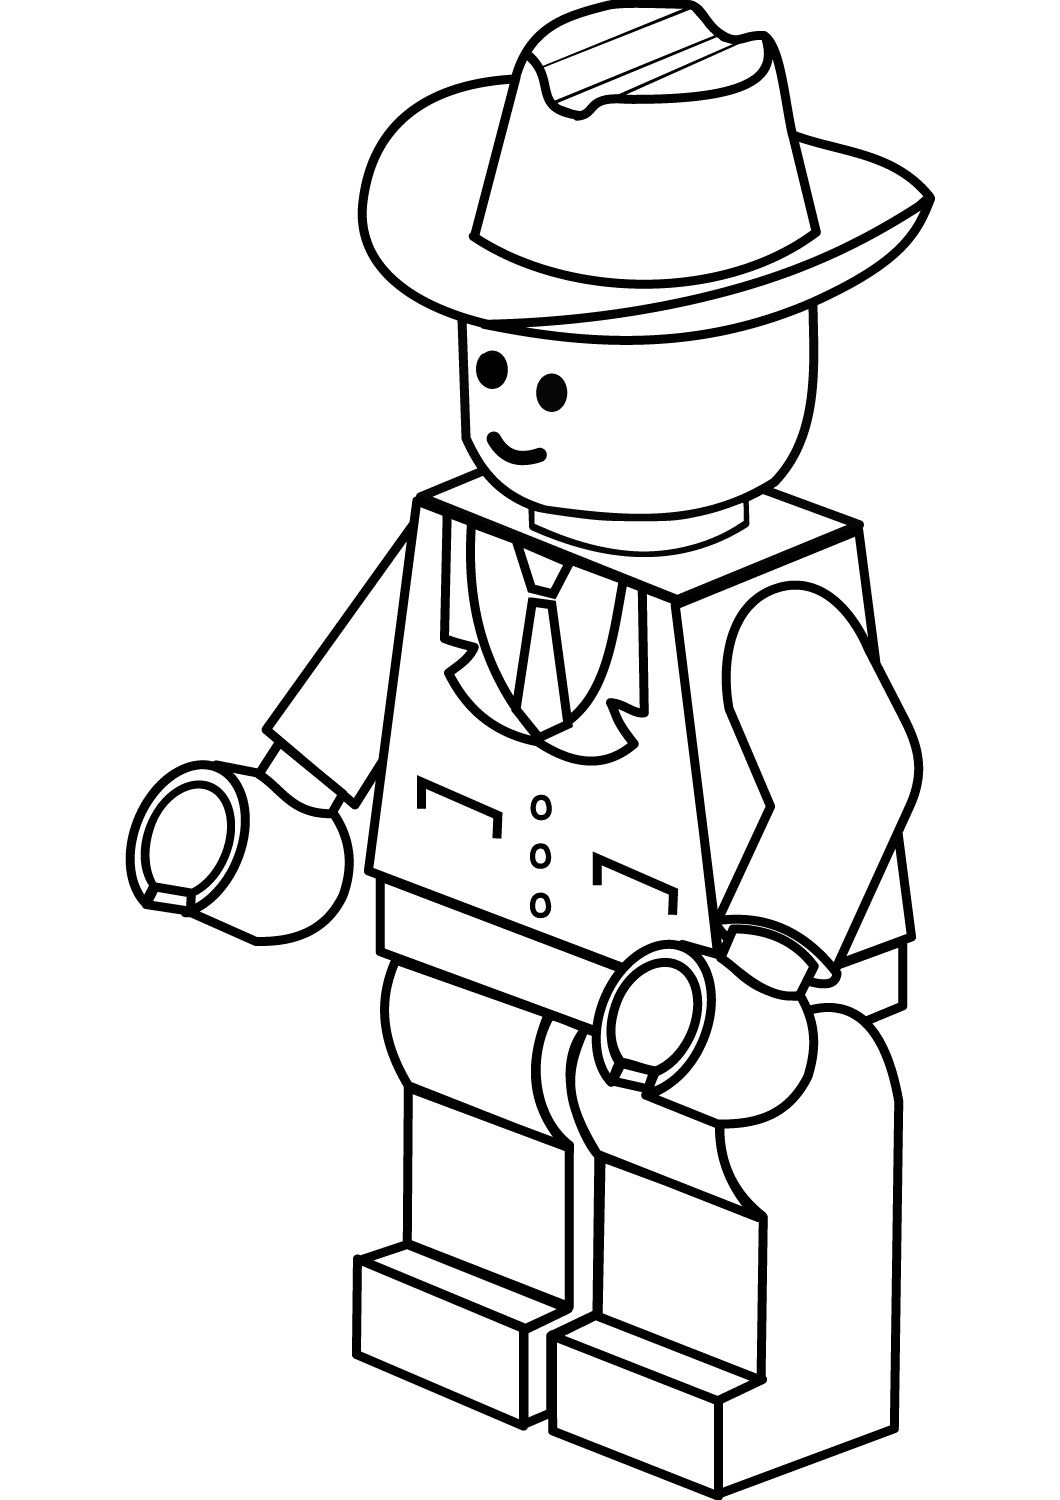 Lego City Cowboy Hat Coloring Page Free Coloring Pages Online Lego Coloring Pages Lego Coloring Lego Coloring Sheet